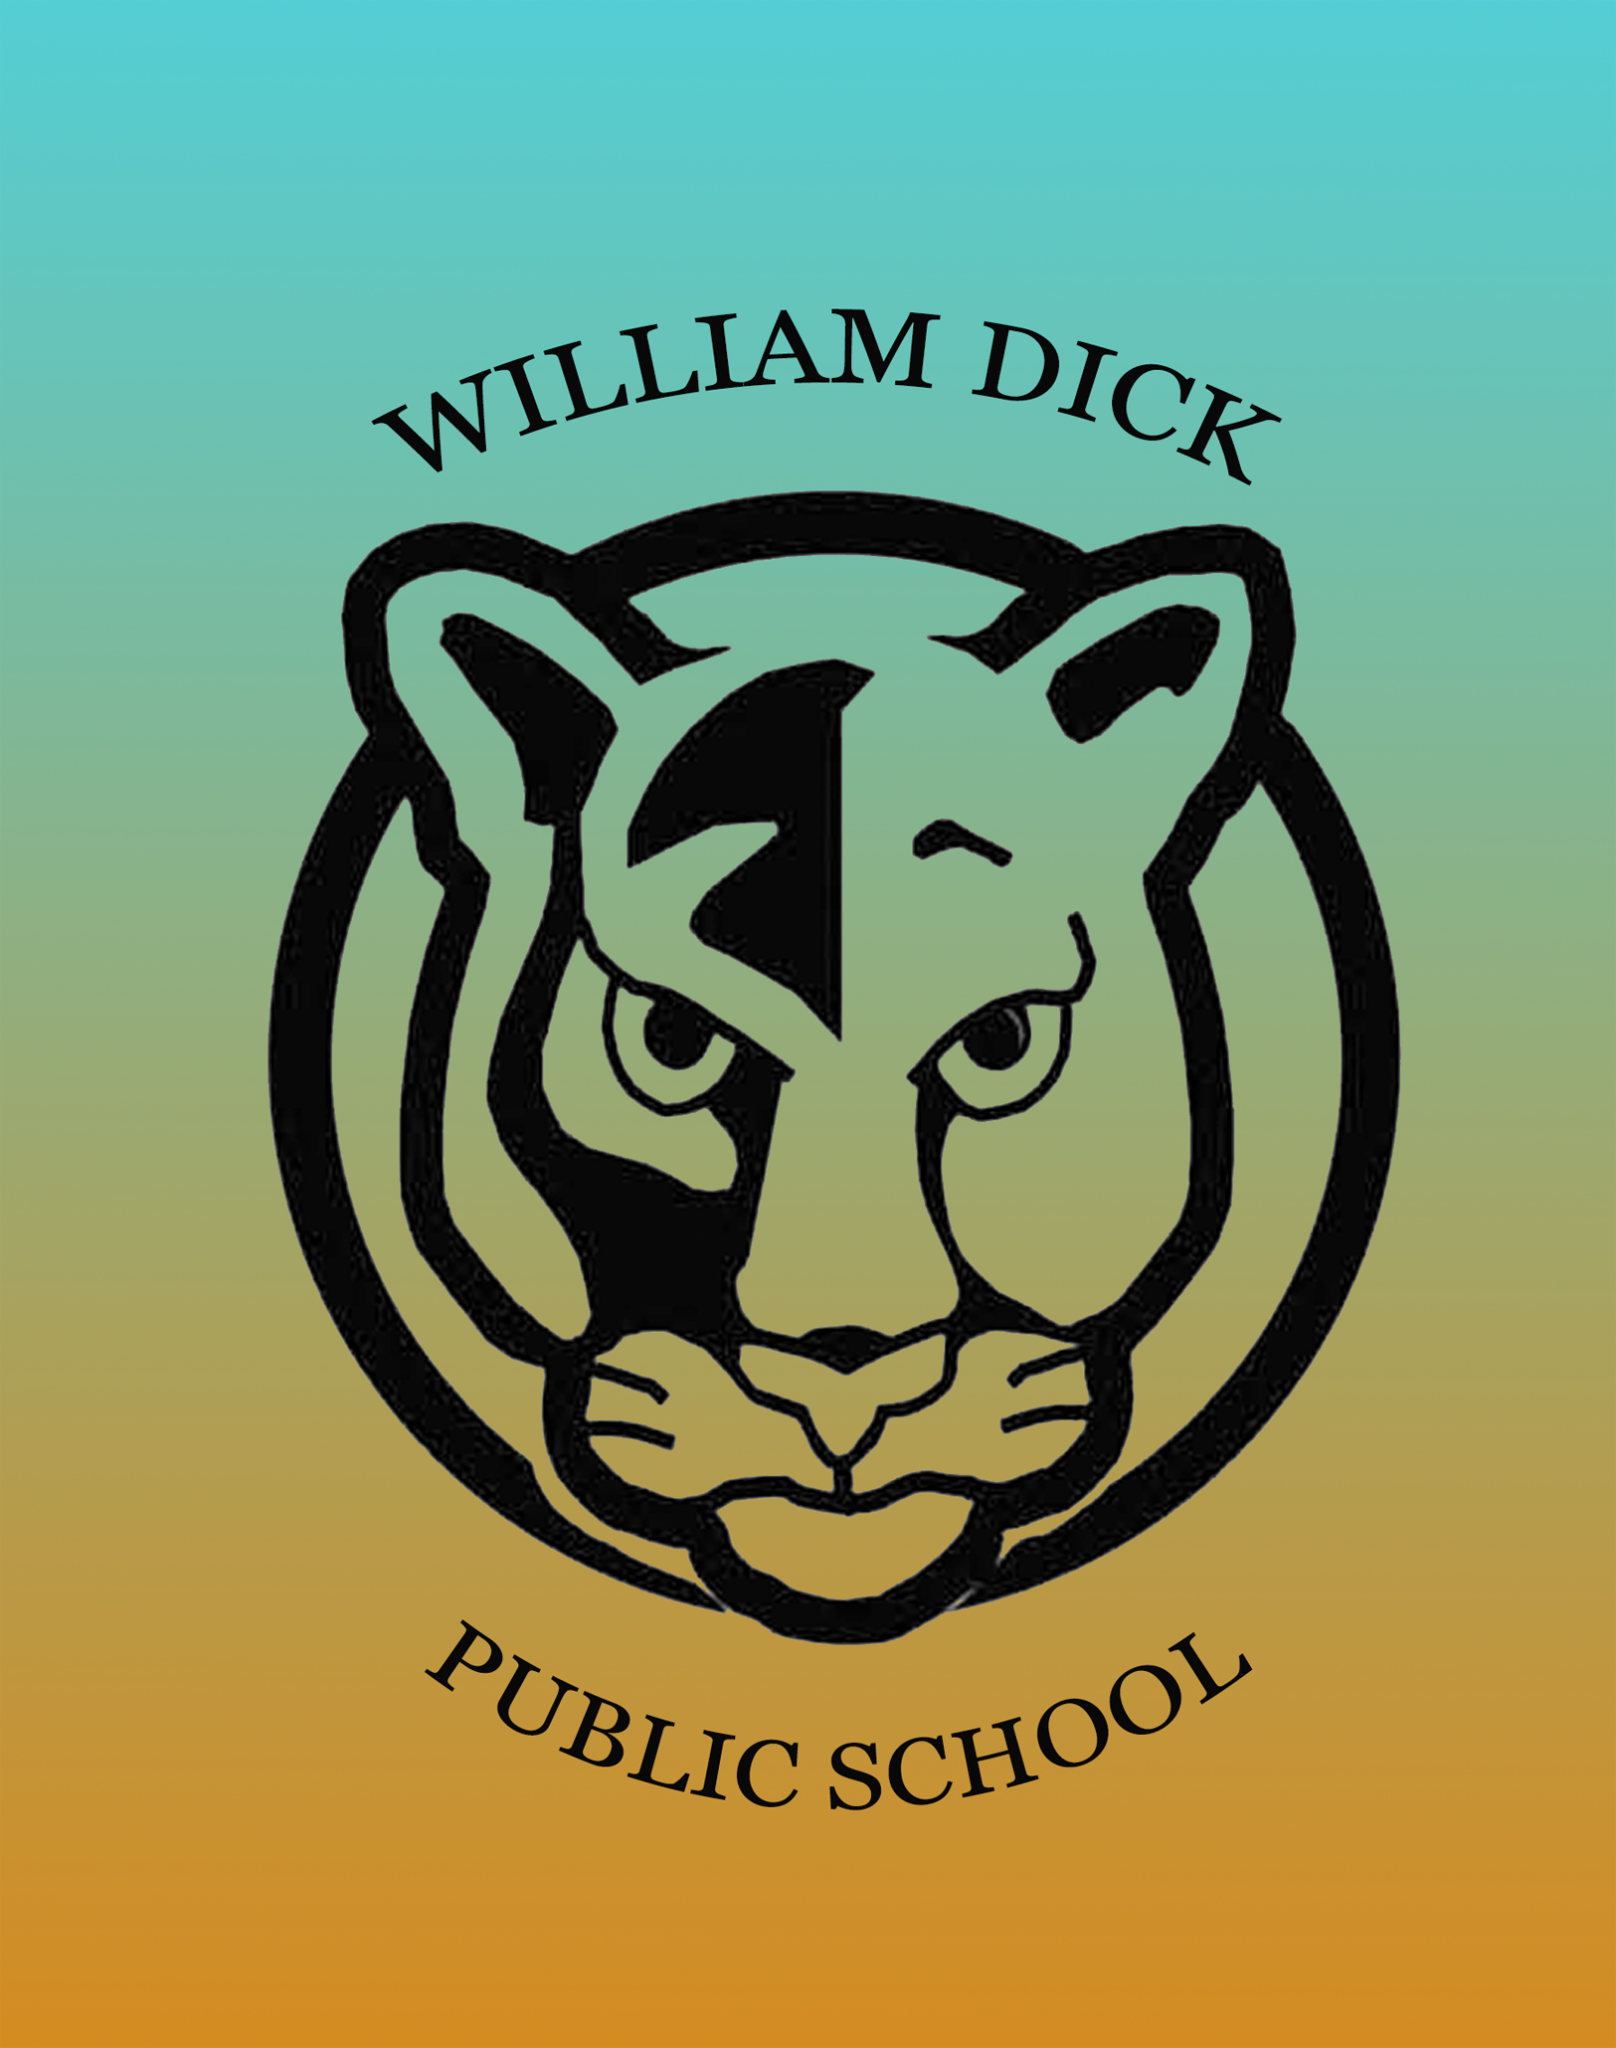 William Dick School